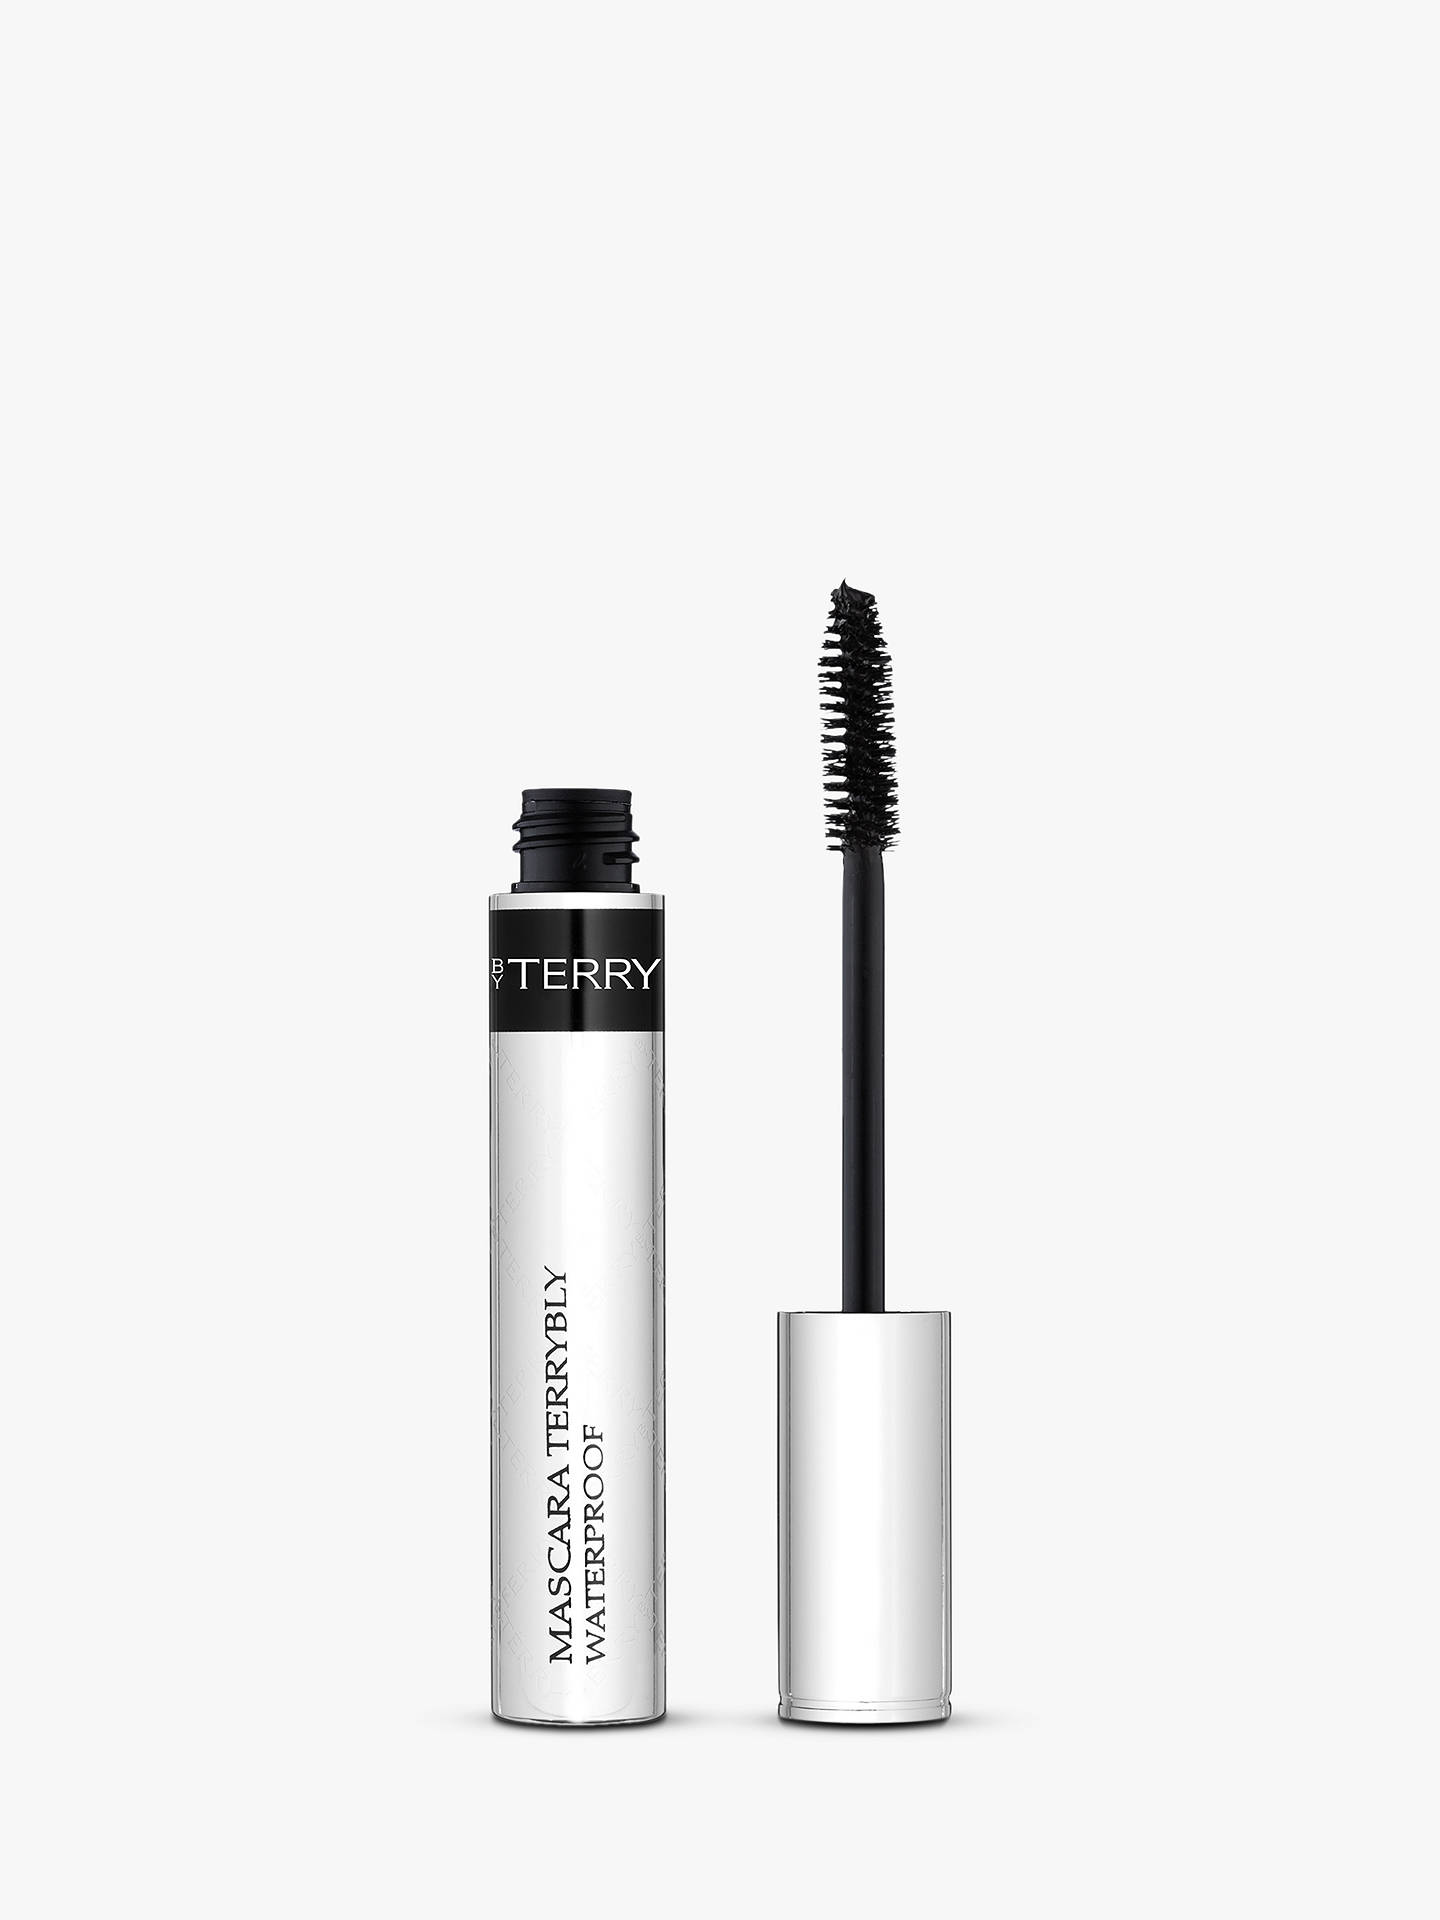 BuyBY TERRY Terrybly Waterproof Serum Mascara, Black Online at johnlewis.com